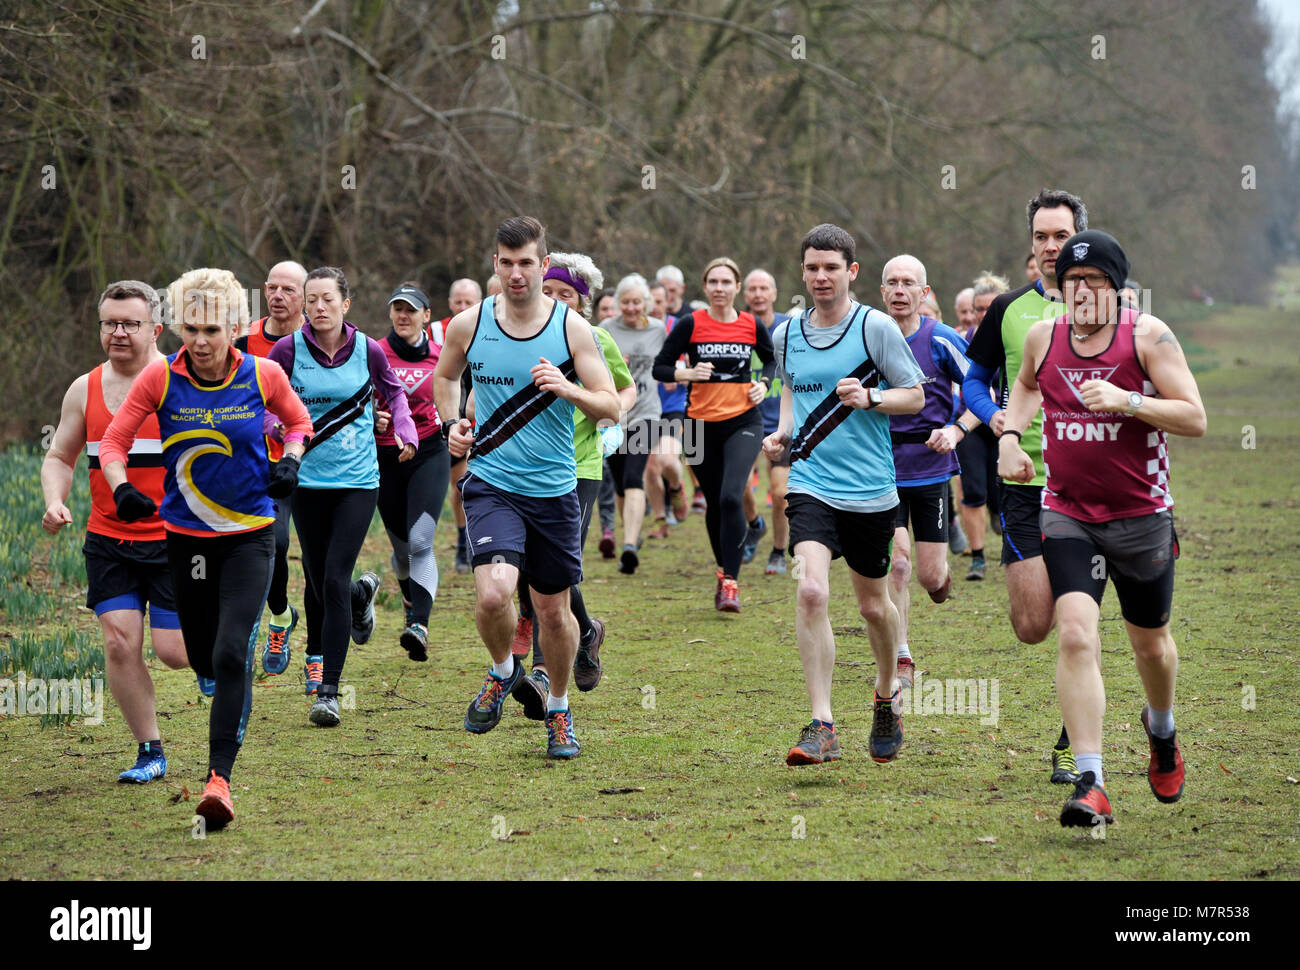 group of cross country runners nowton park bury st edmunds suffolk - Stock Image